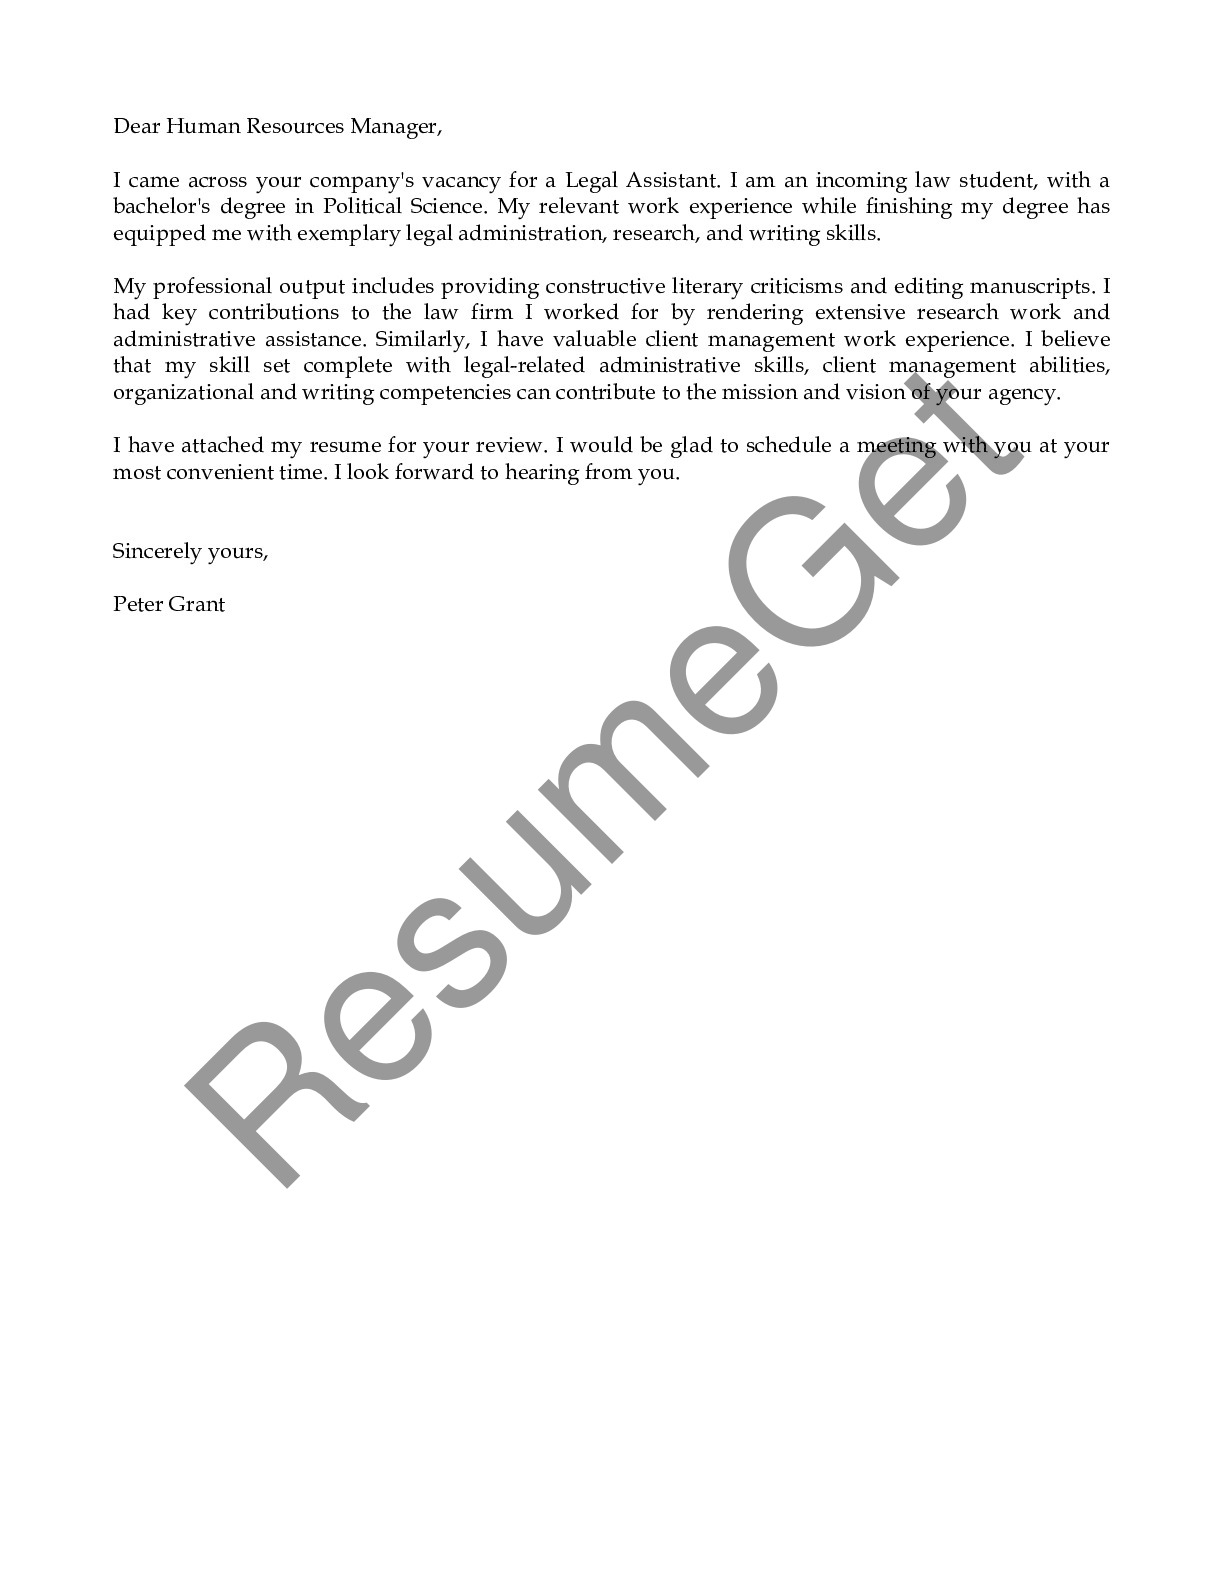 Email Cover Letter Example for Legal Assistant